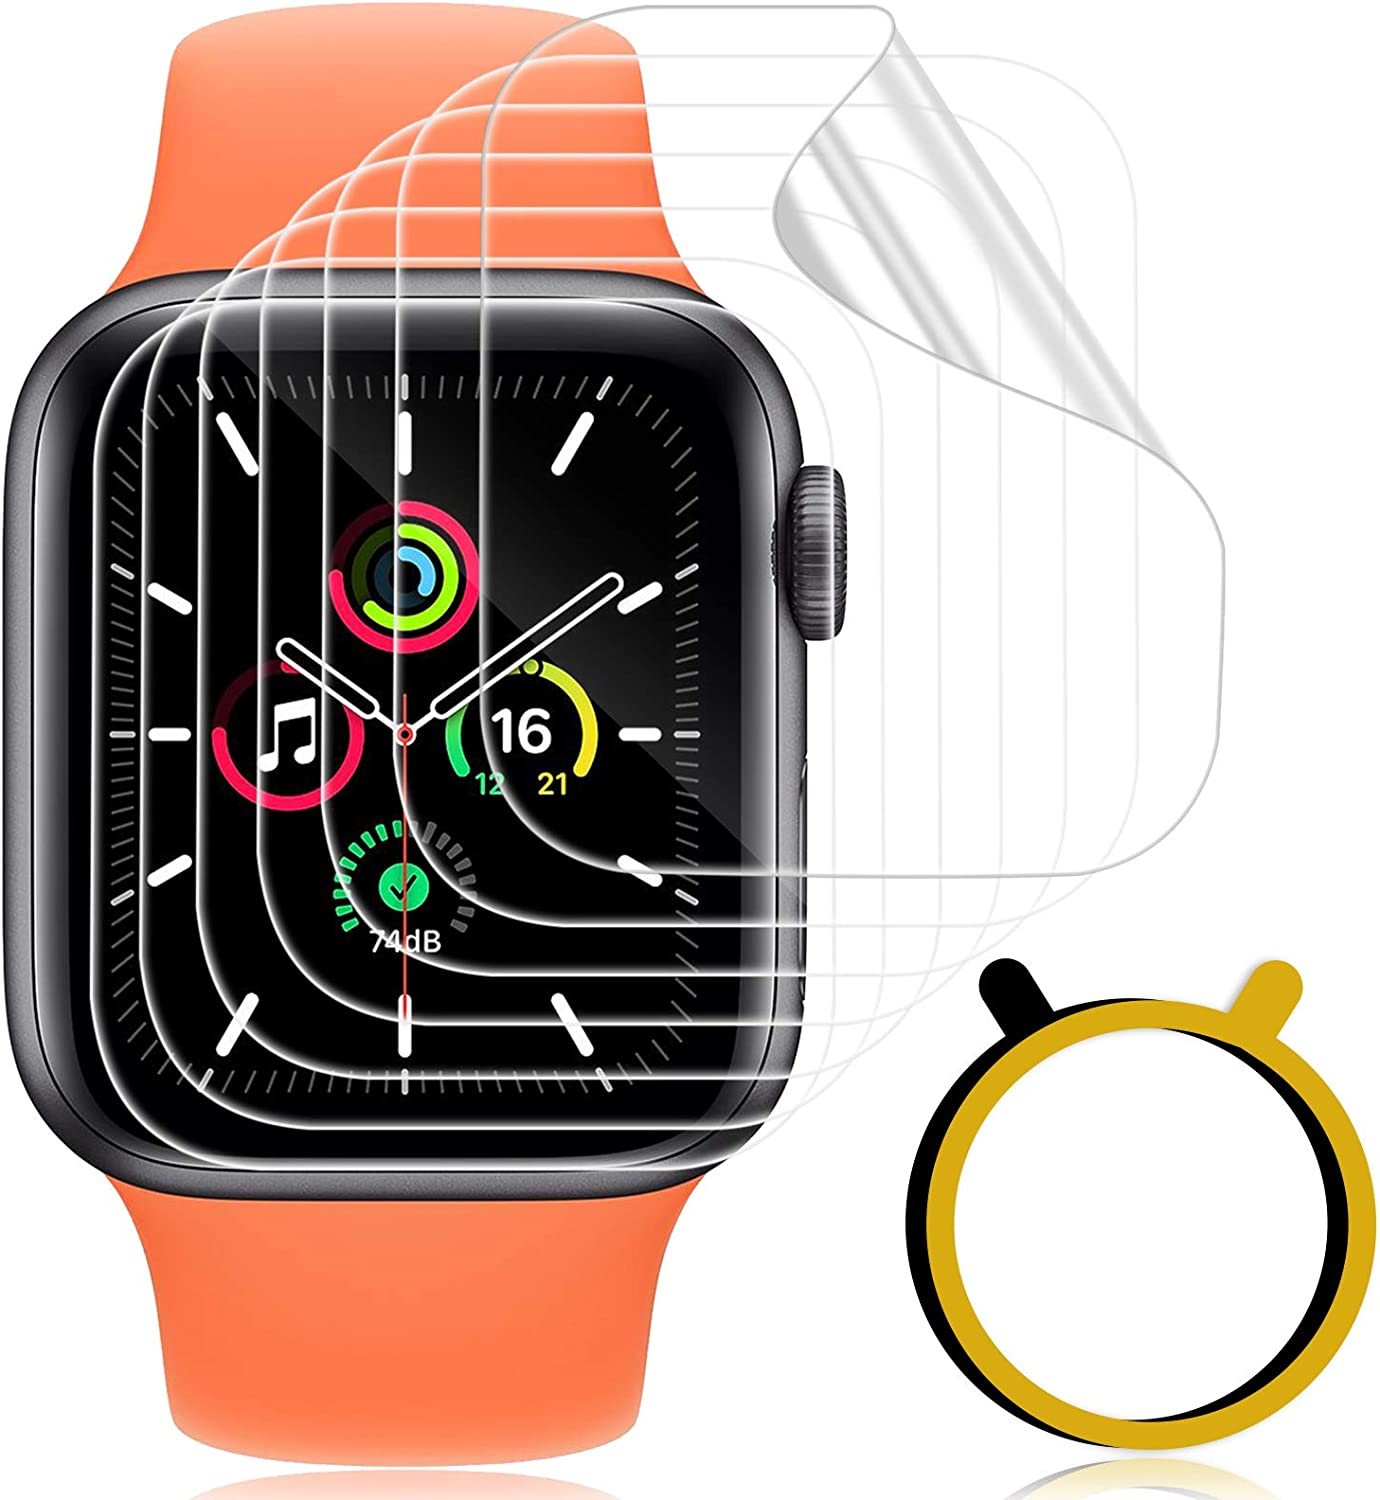 [7 Pack] GEAK Flexible TPU Screen Protector for Apple Watch 42mm Series 3 2 1, Self Healing HD Bubble-Free Film for iWatch 44mm SE Serise 6 5 4, Clear